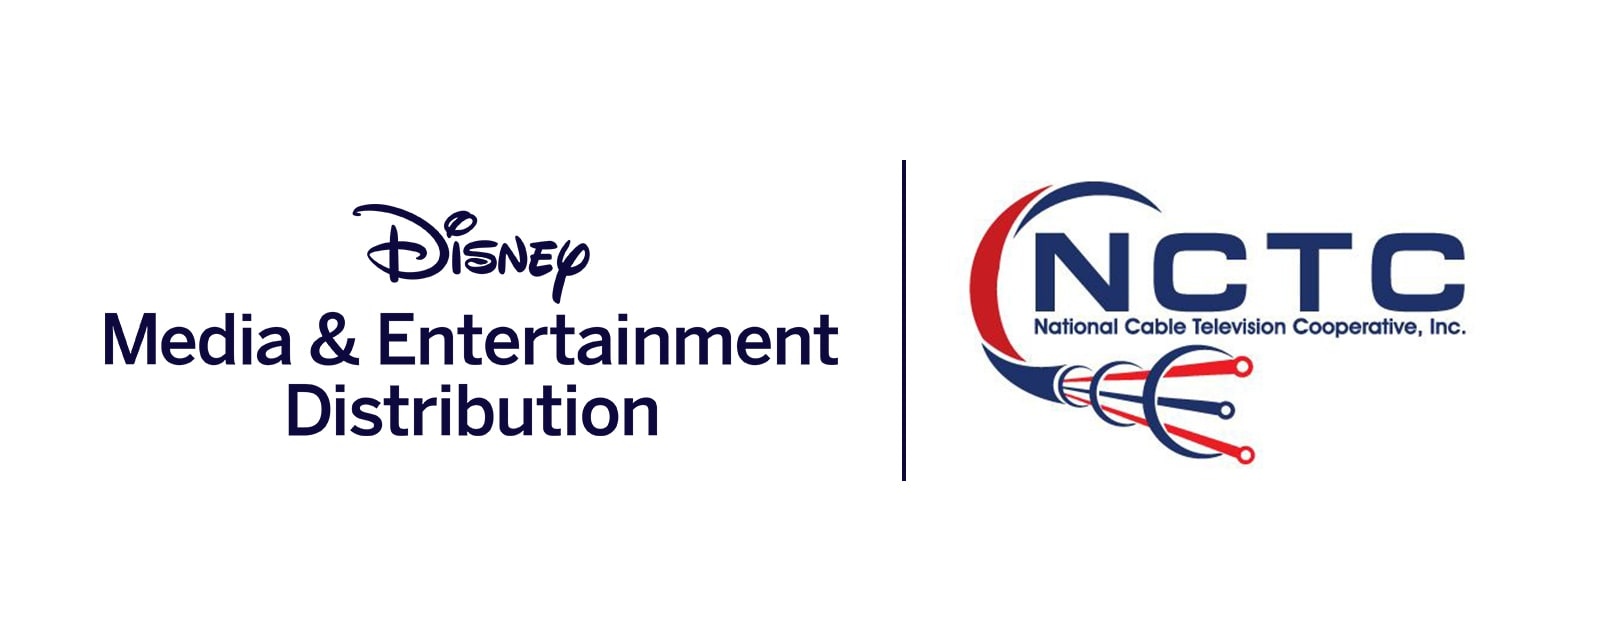 Disney Media & Entertainment Distribution and National Cable Television Cooperative, Inc. logos